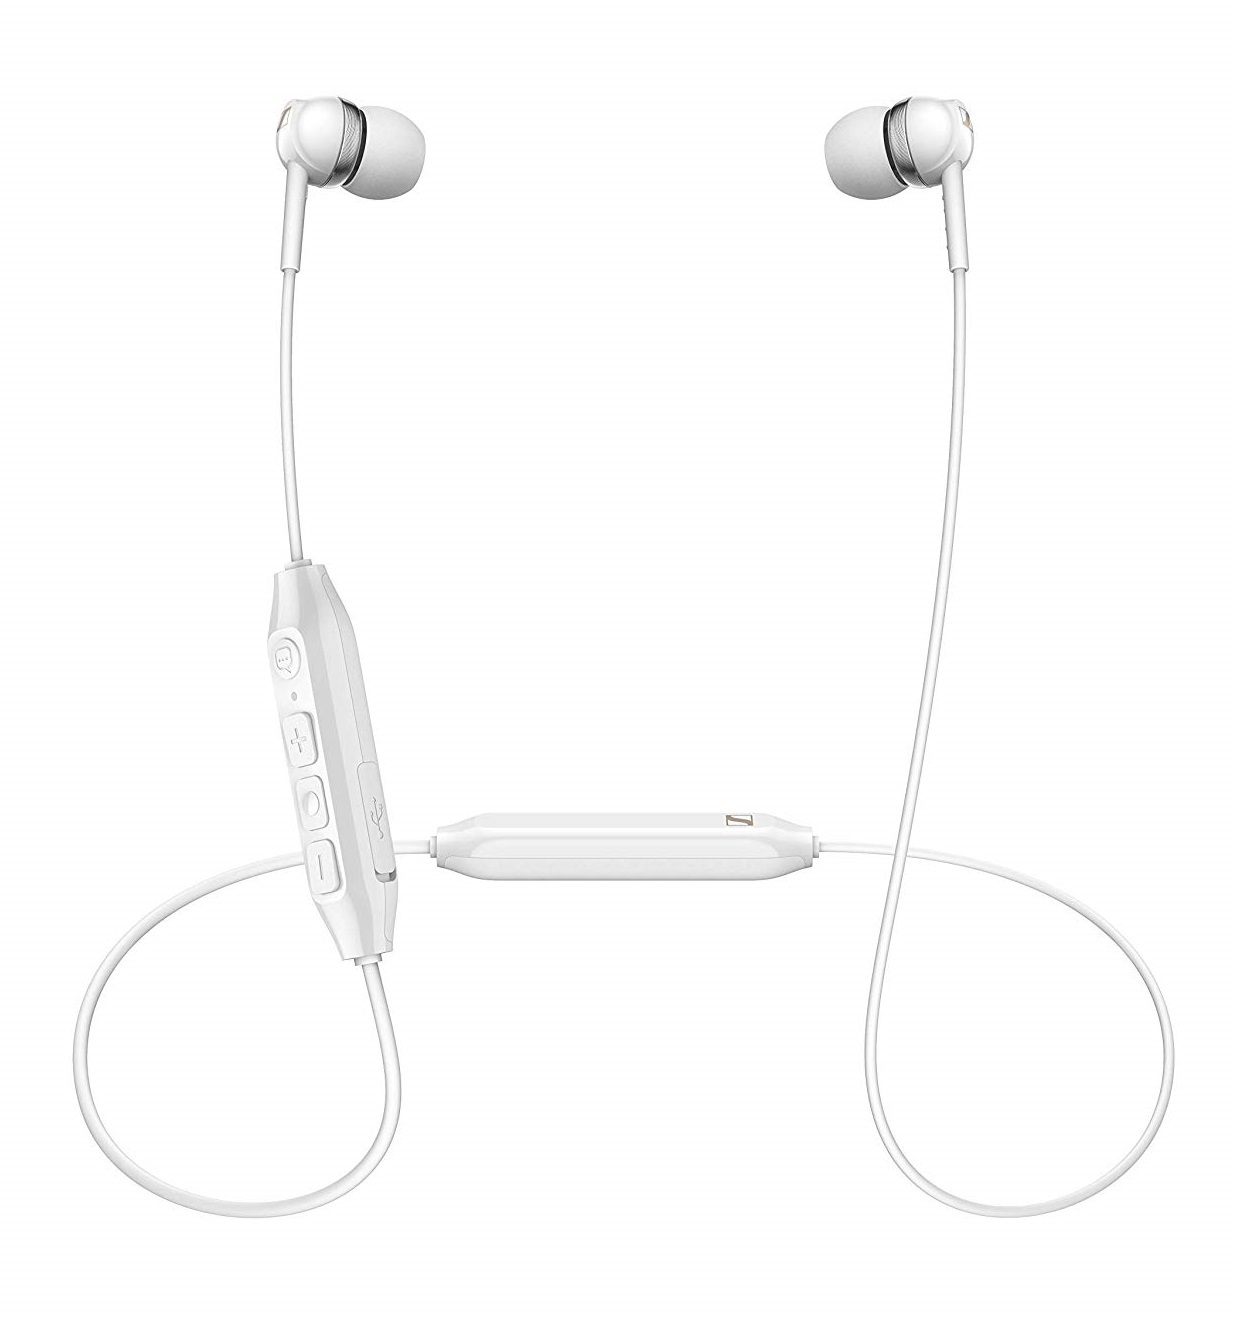 Sennheiser: CX 350BT - Wired In-Ear Headphones (White) image